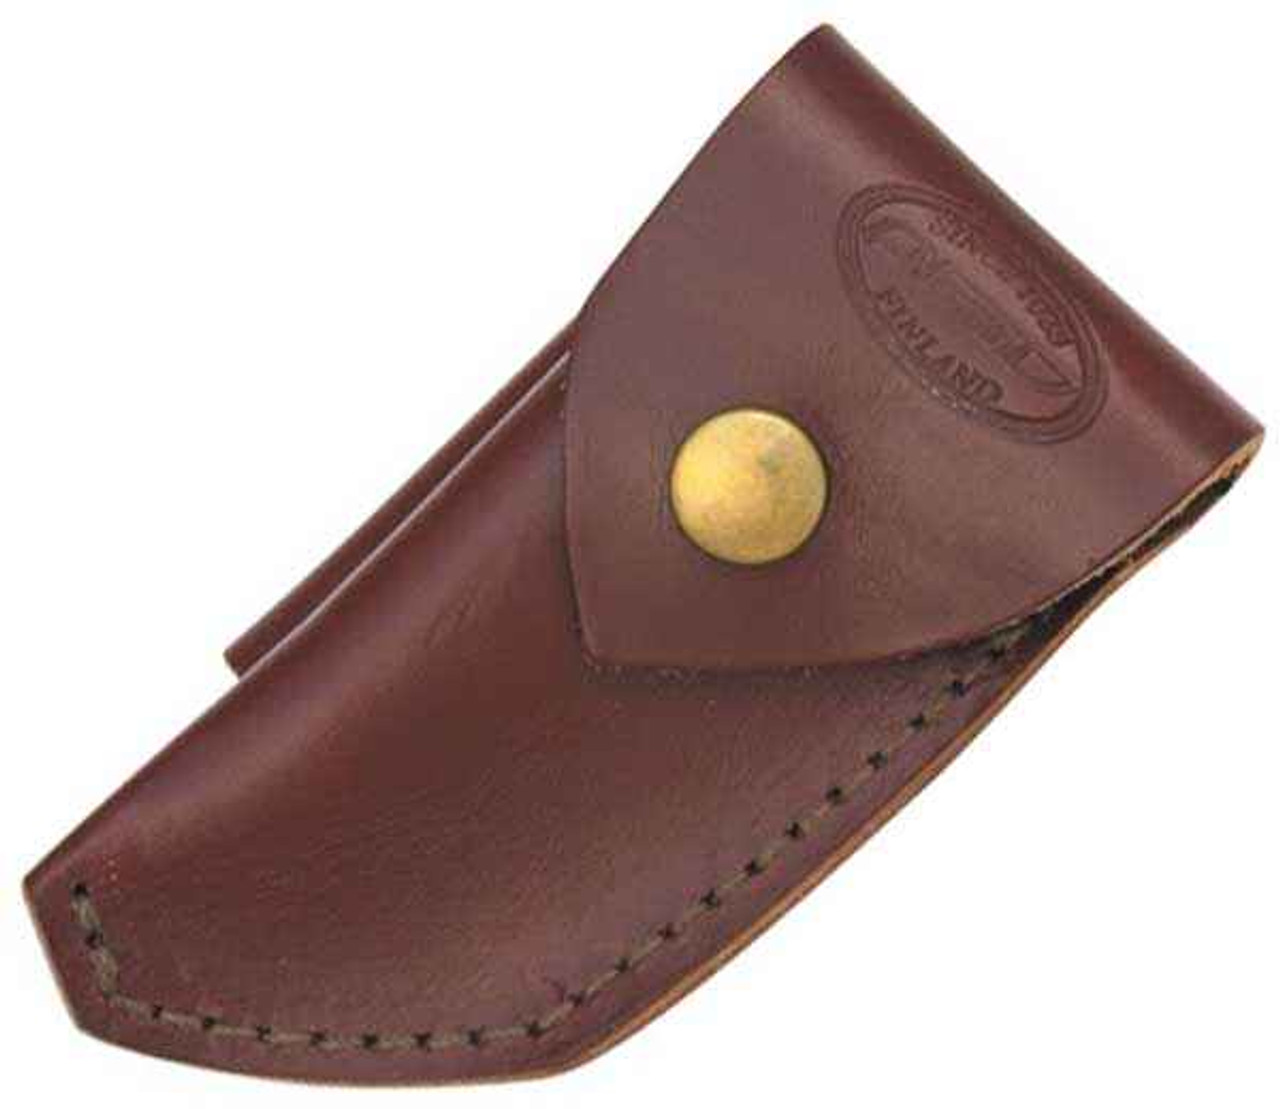 Marttiini Brown Leather Belt Sheath Small